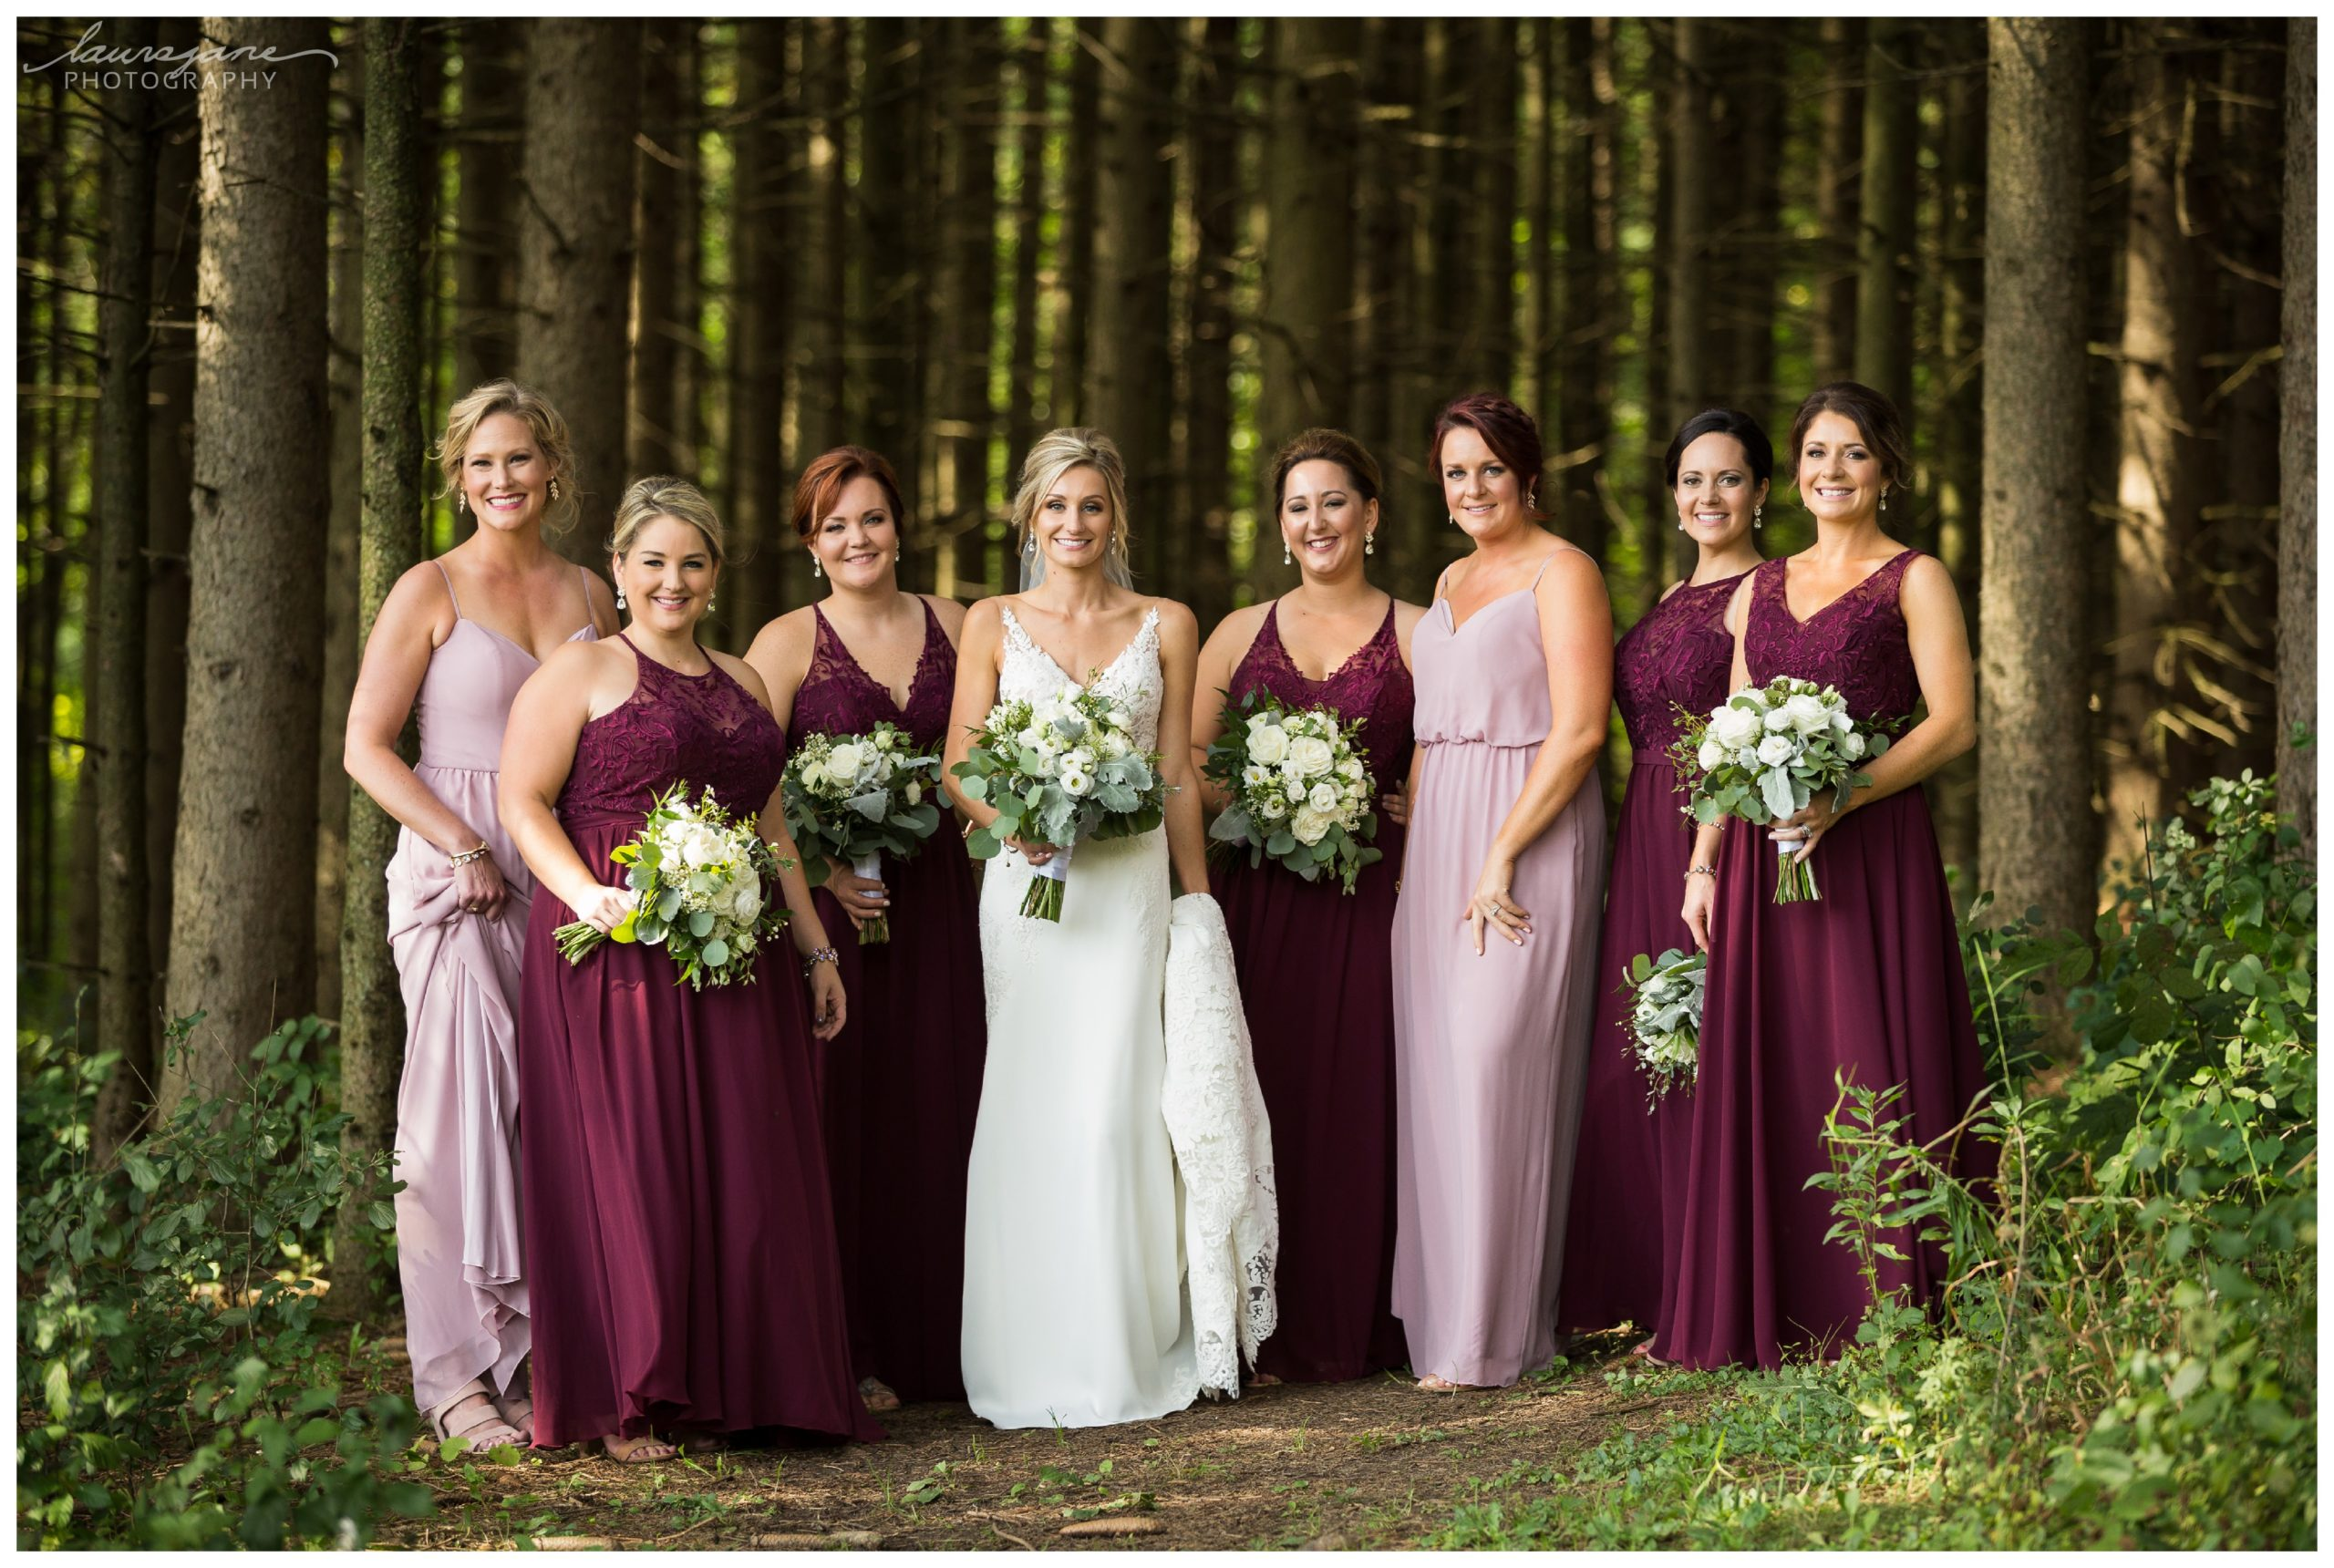 Bride & Bridesmaid Portraits at Glacier Hills